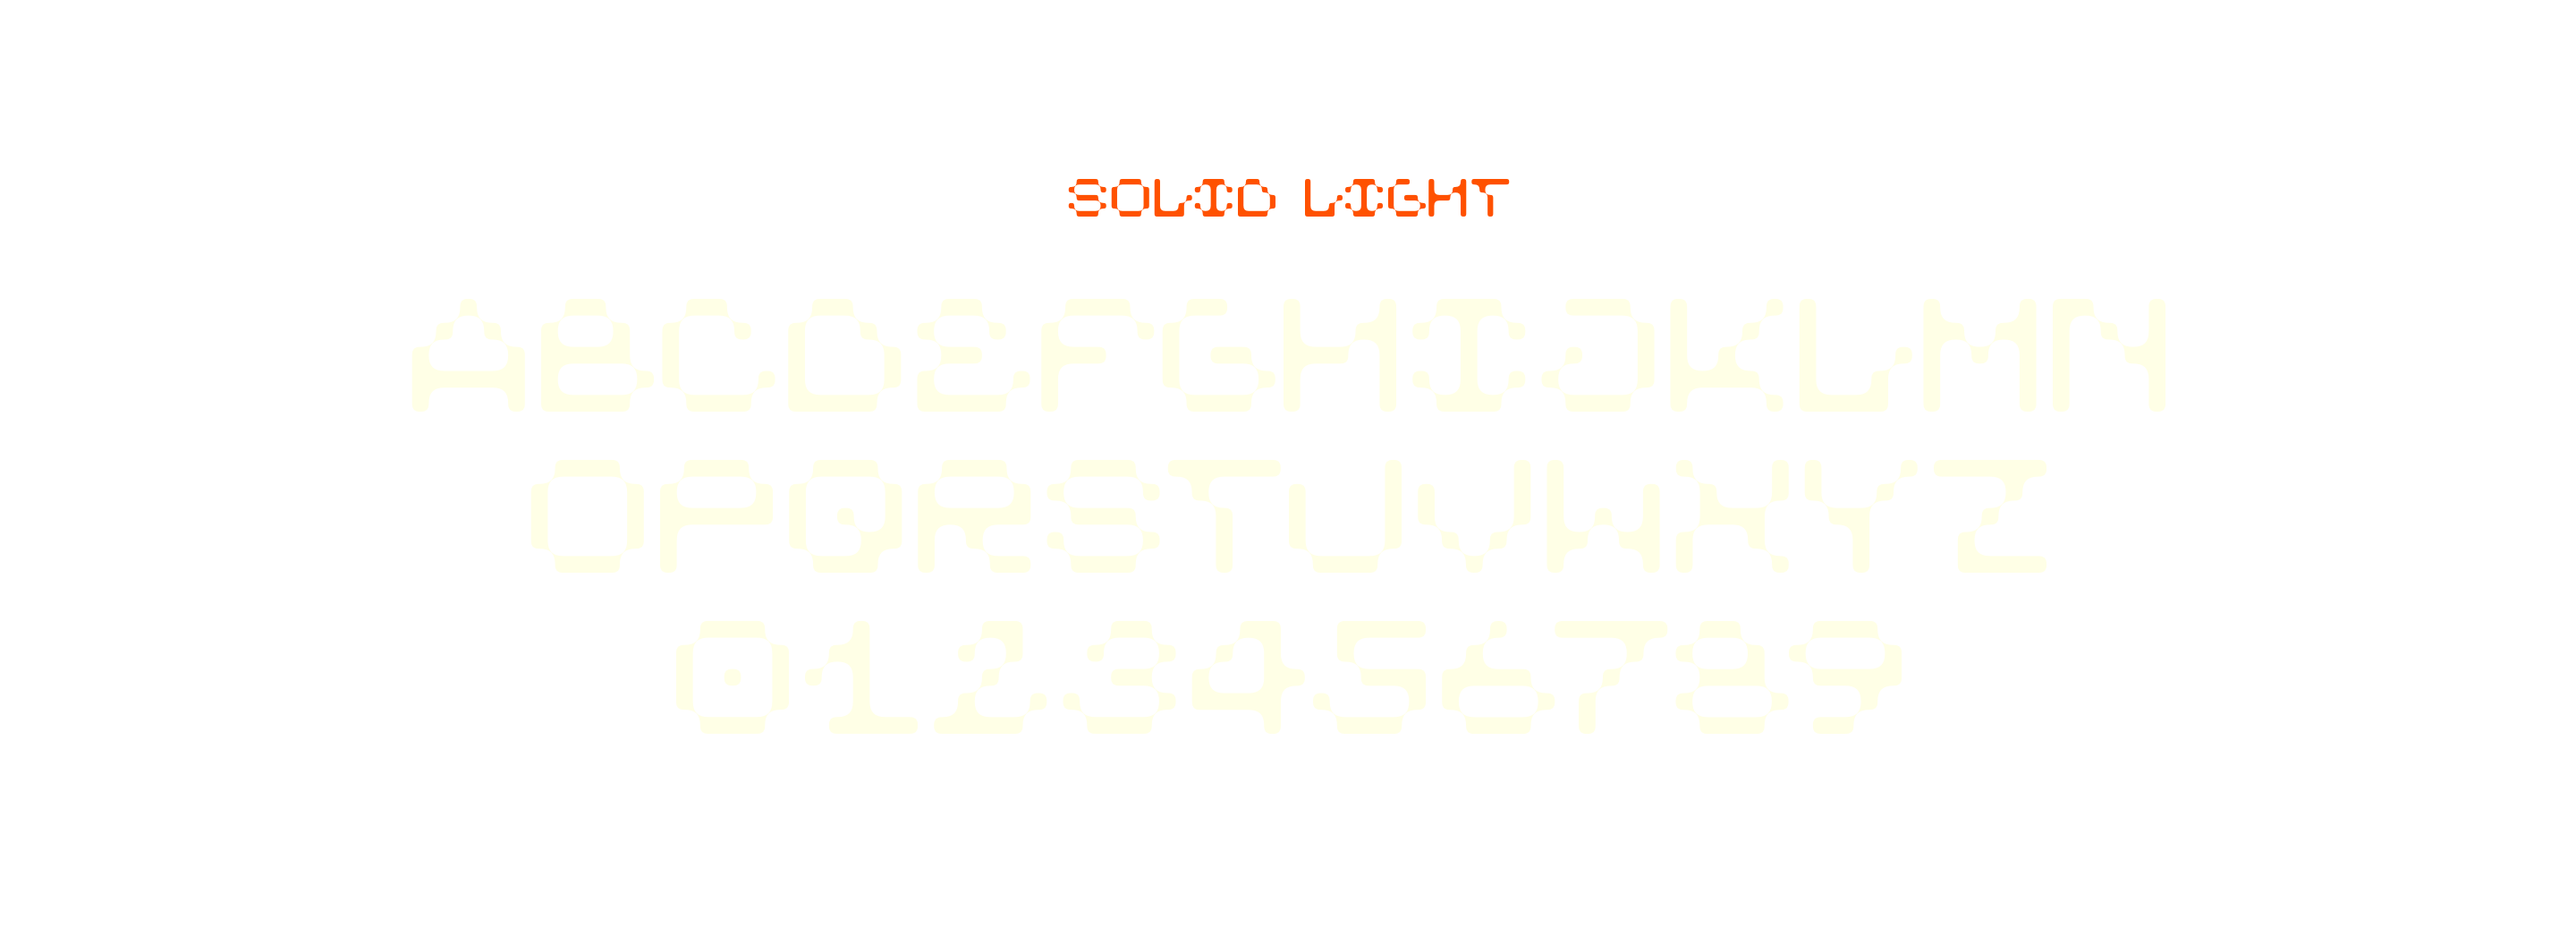 ARK-ES Typeface by Stuedio – Solid Light